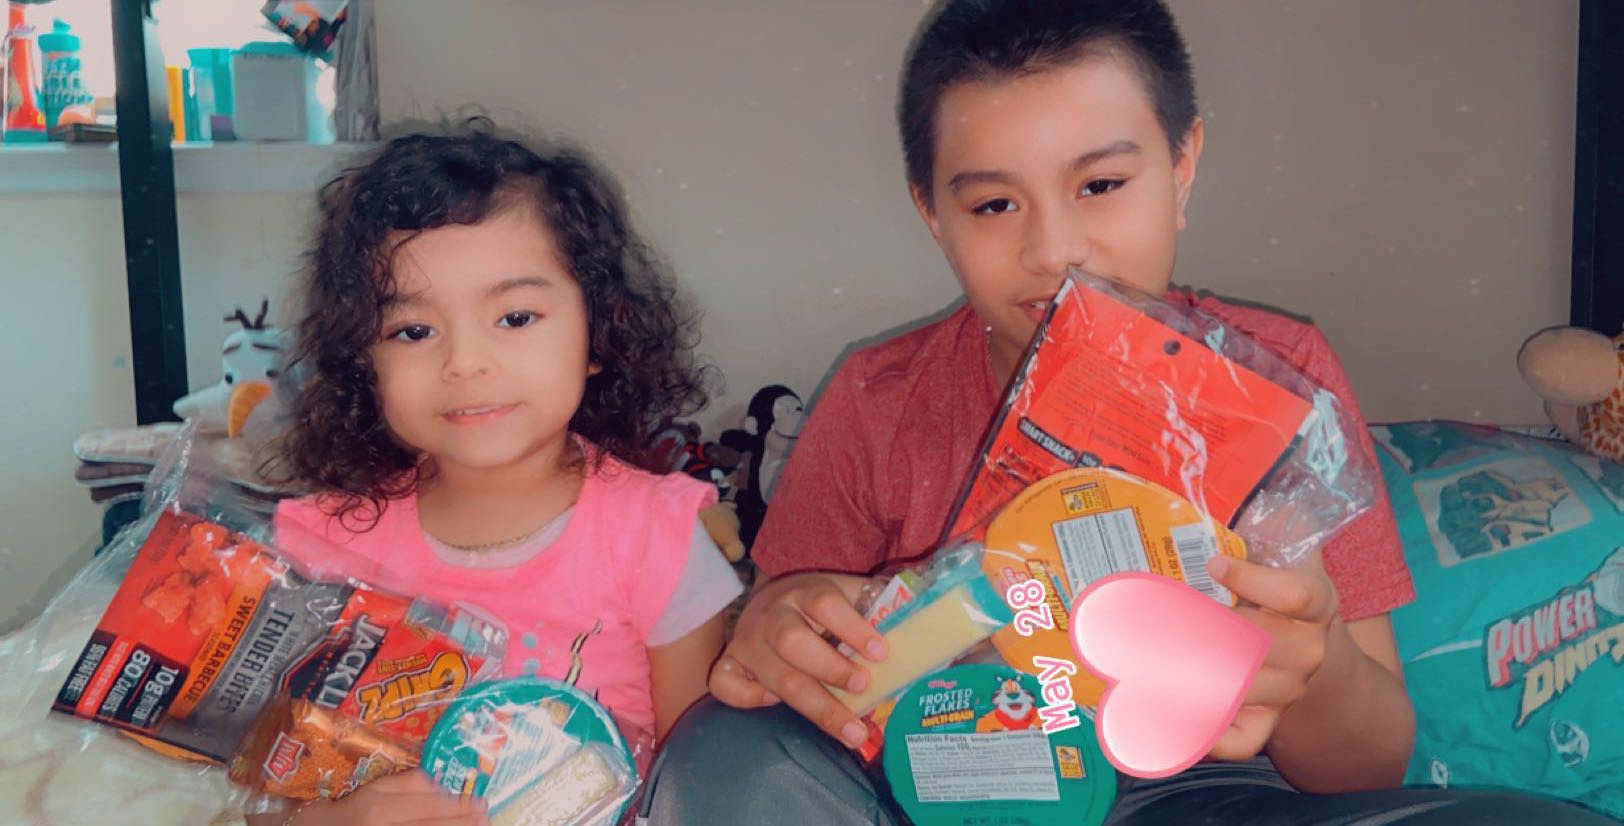 Children Receive Weekend Food in DMV Communities Heavily Affected by COVID-19 Pandemic